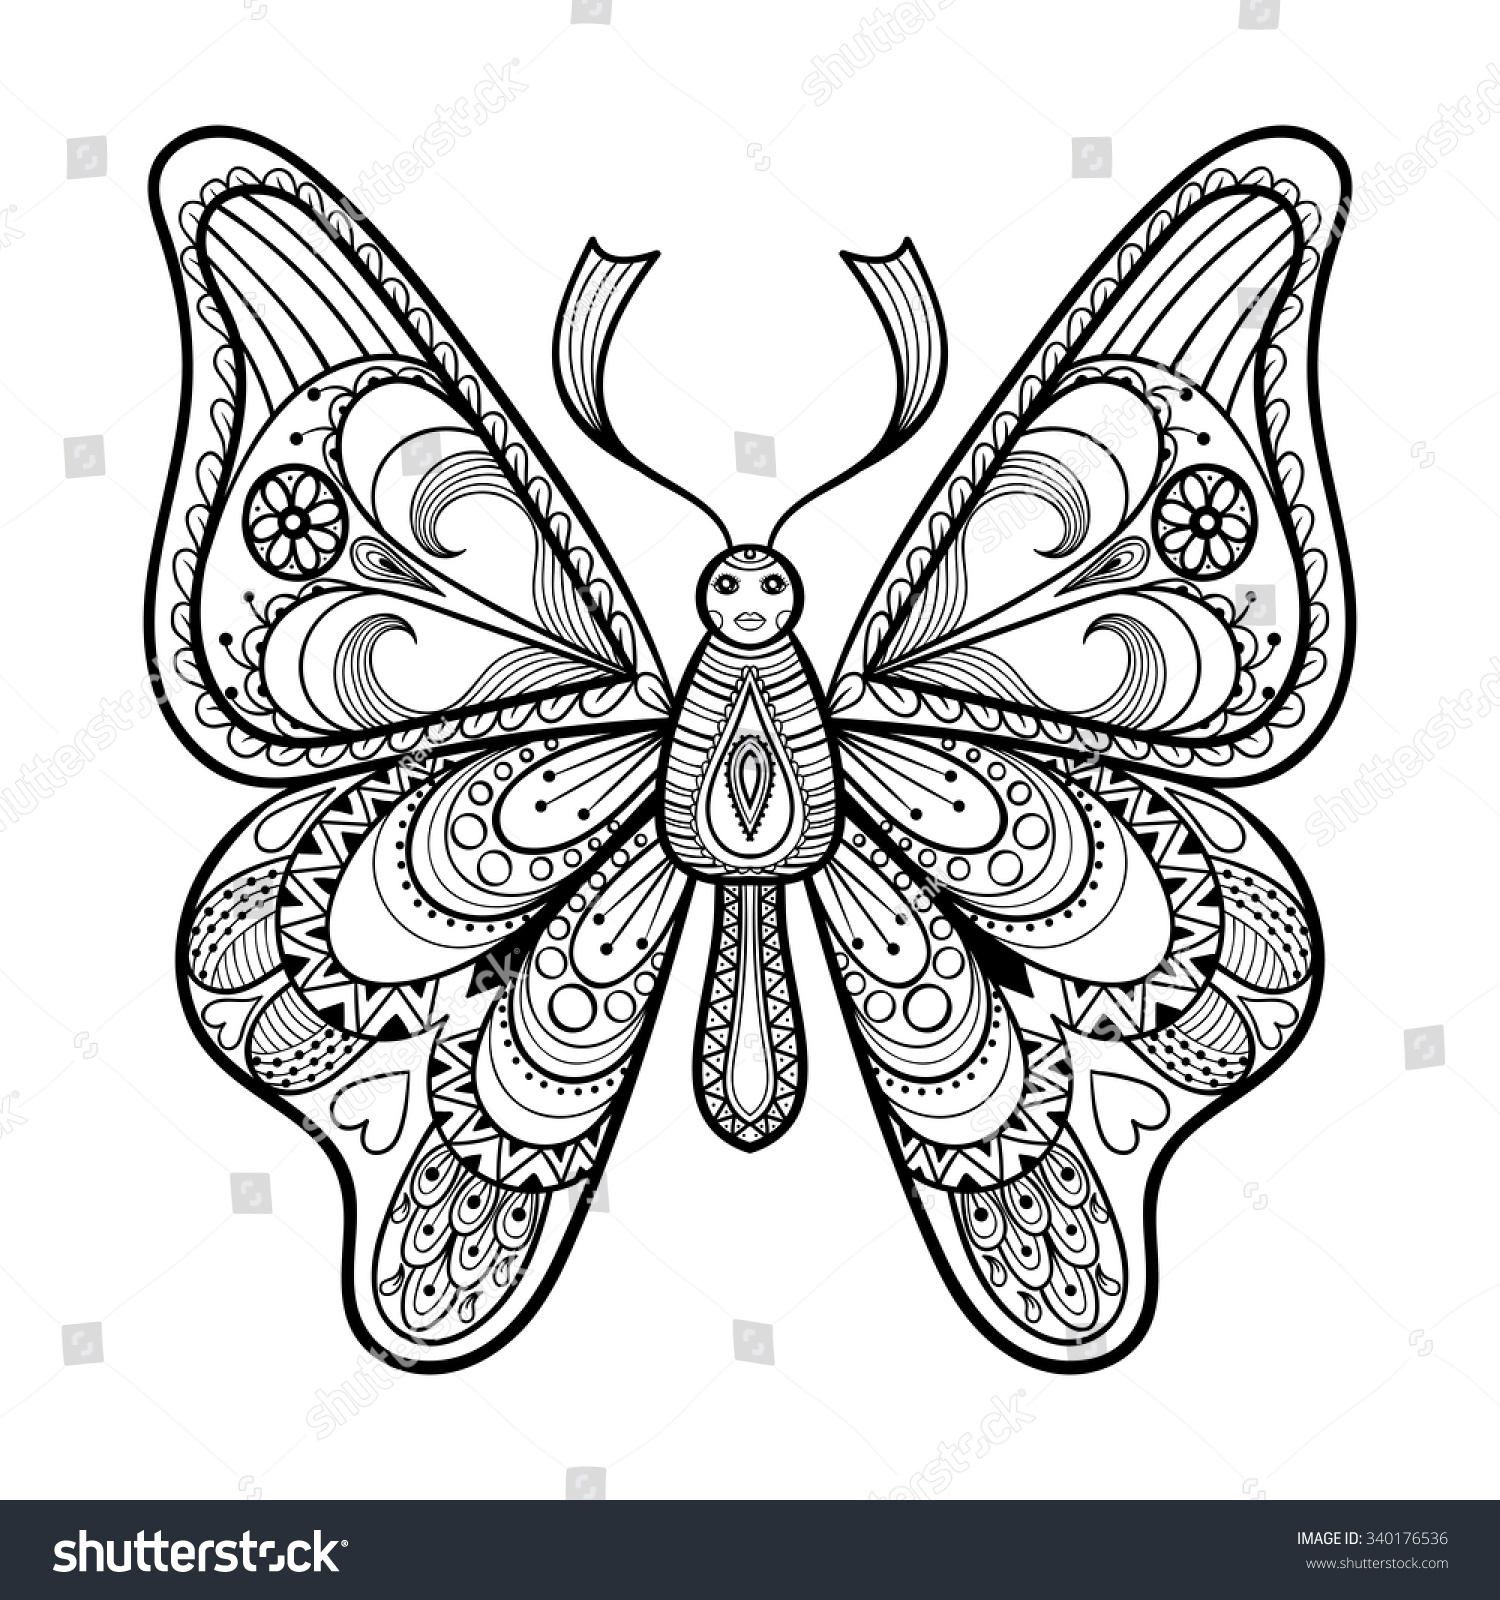 zentangle vector black butterfly for adult anti stress coloring pages in doodle style patterned illustration - Advanced Coloring Pages Butterfly